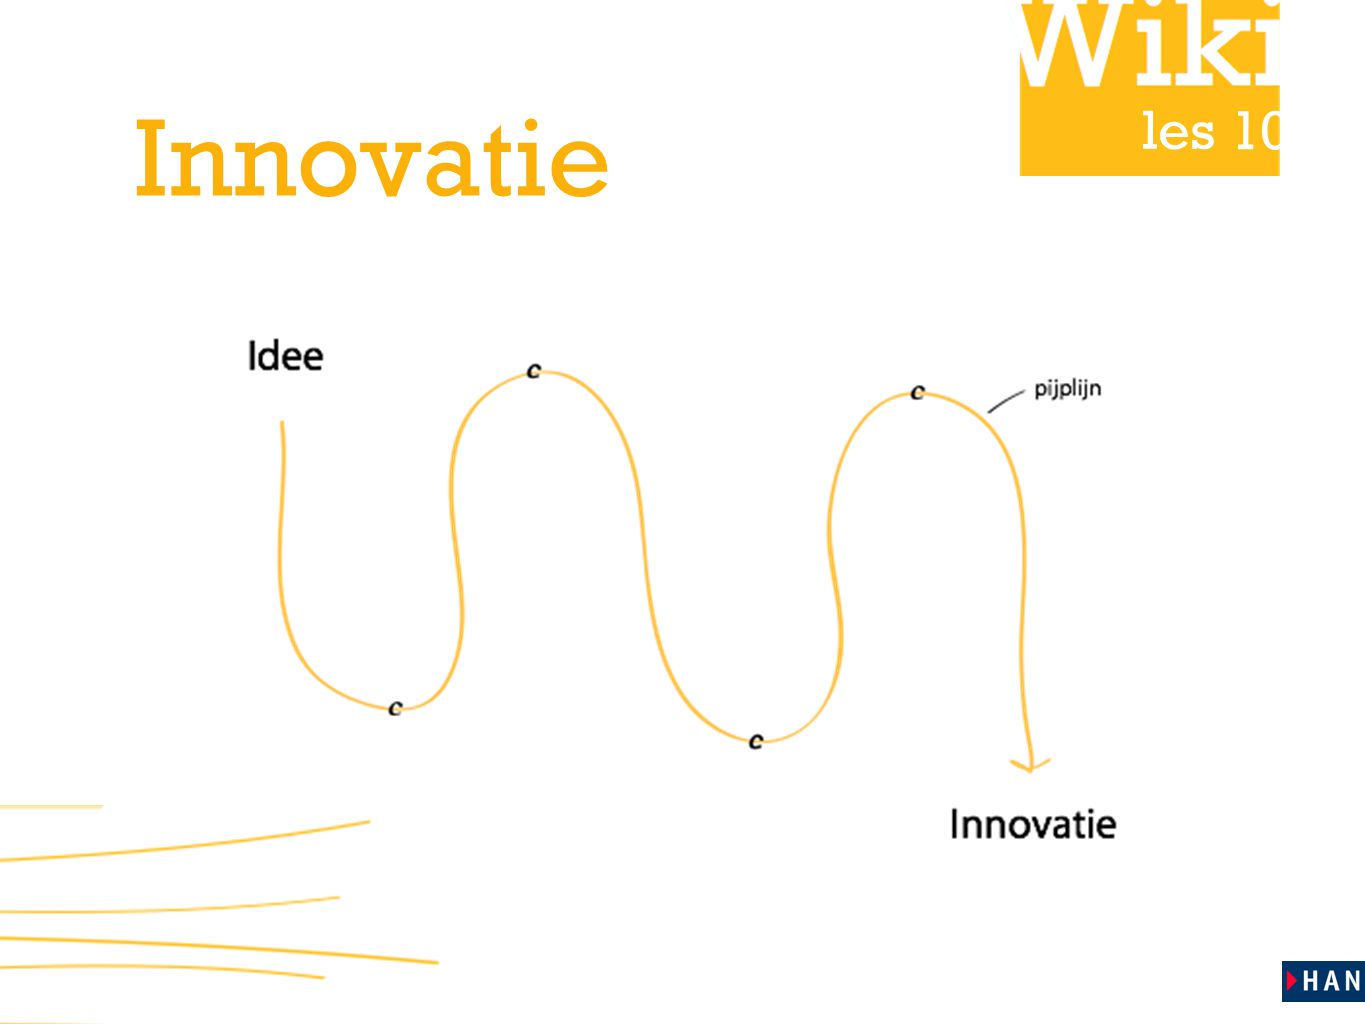 les 10 Innovatie